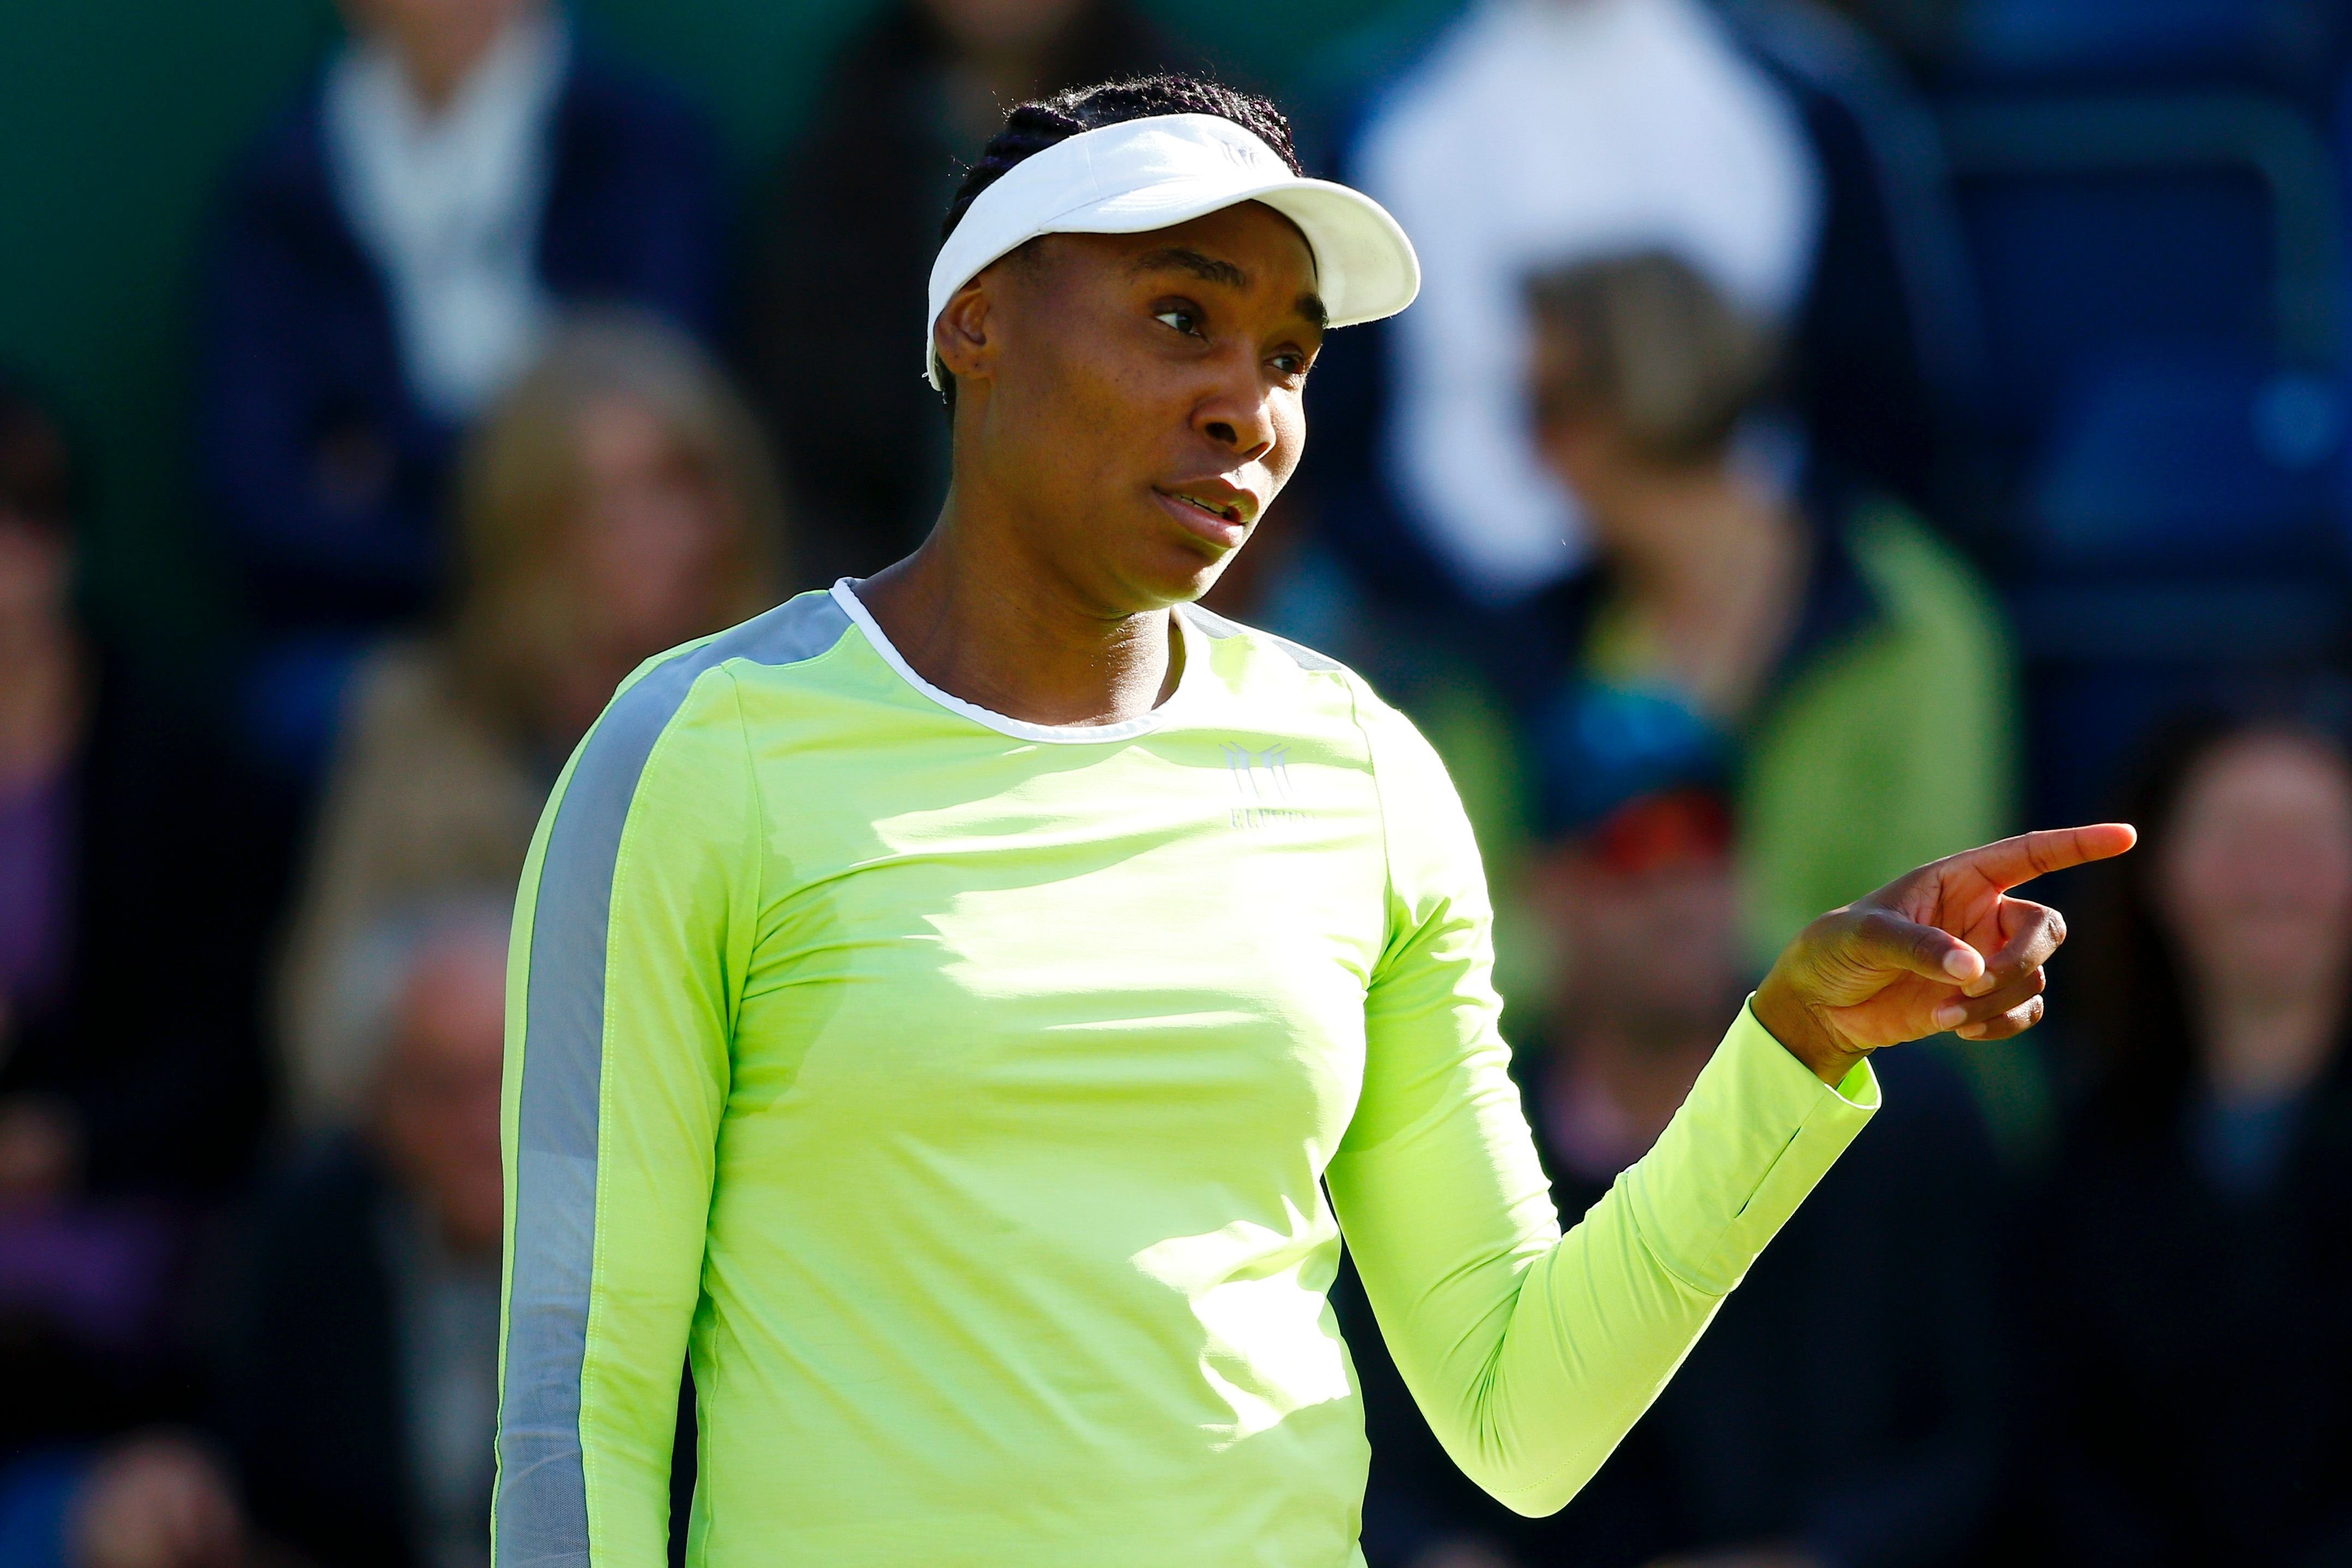 Venus Williams of the USA reacts during her second round match against Qiang Wang of China during day four of the Nature Valley Classic at Edgbaston Priory Club on June 20, 2019 | Photo: Getty Images